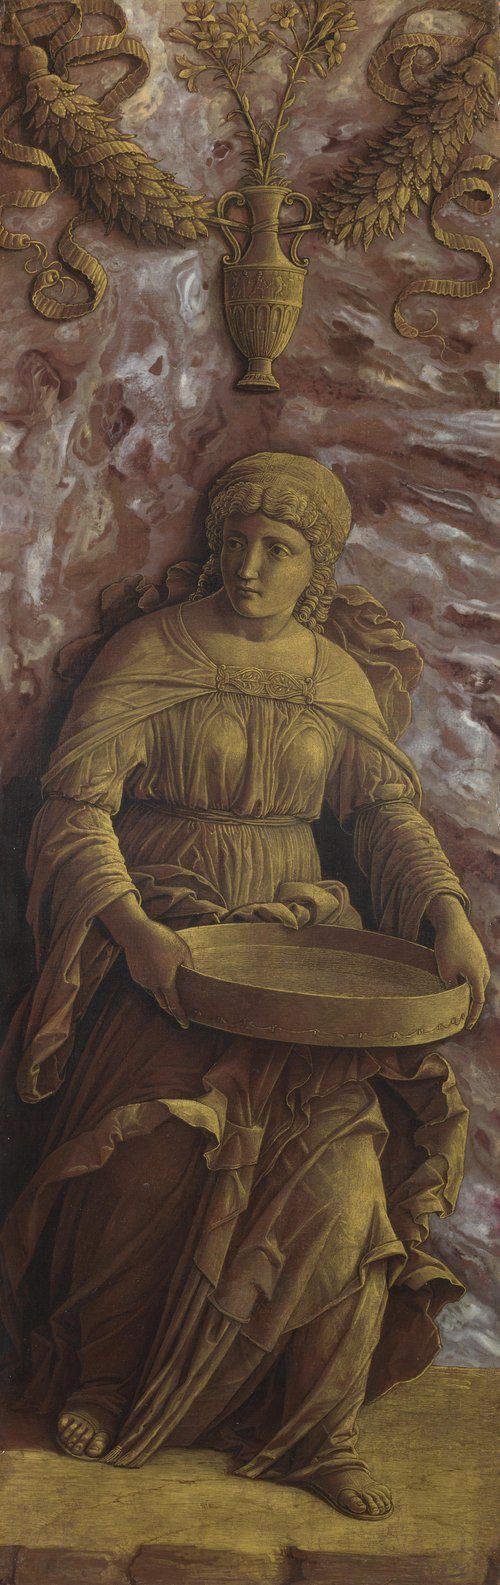 The Vestal Virgin Tuccia with a sieve   Andrea Mantegna   oil painting